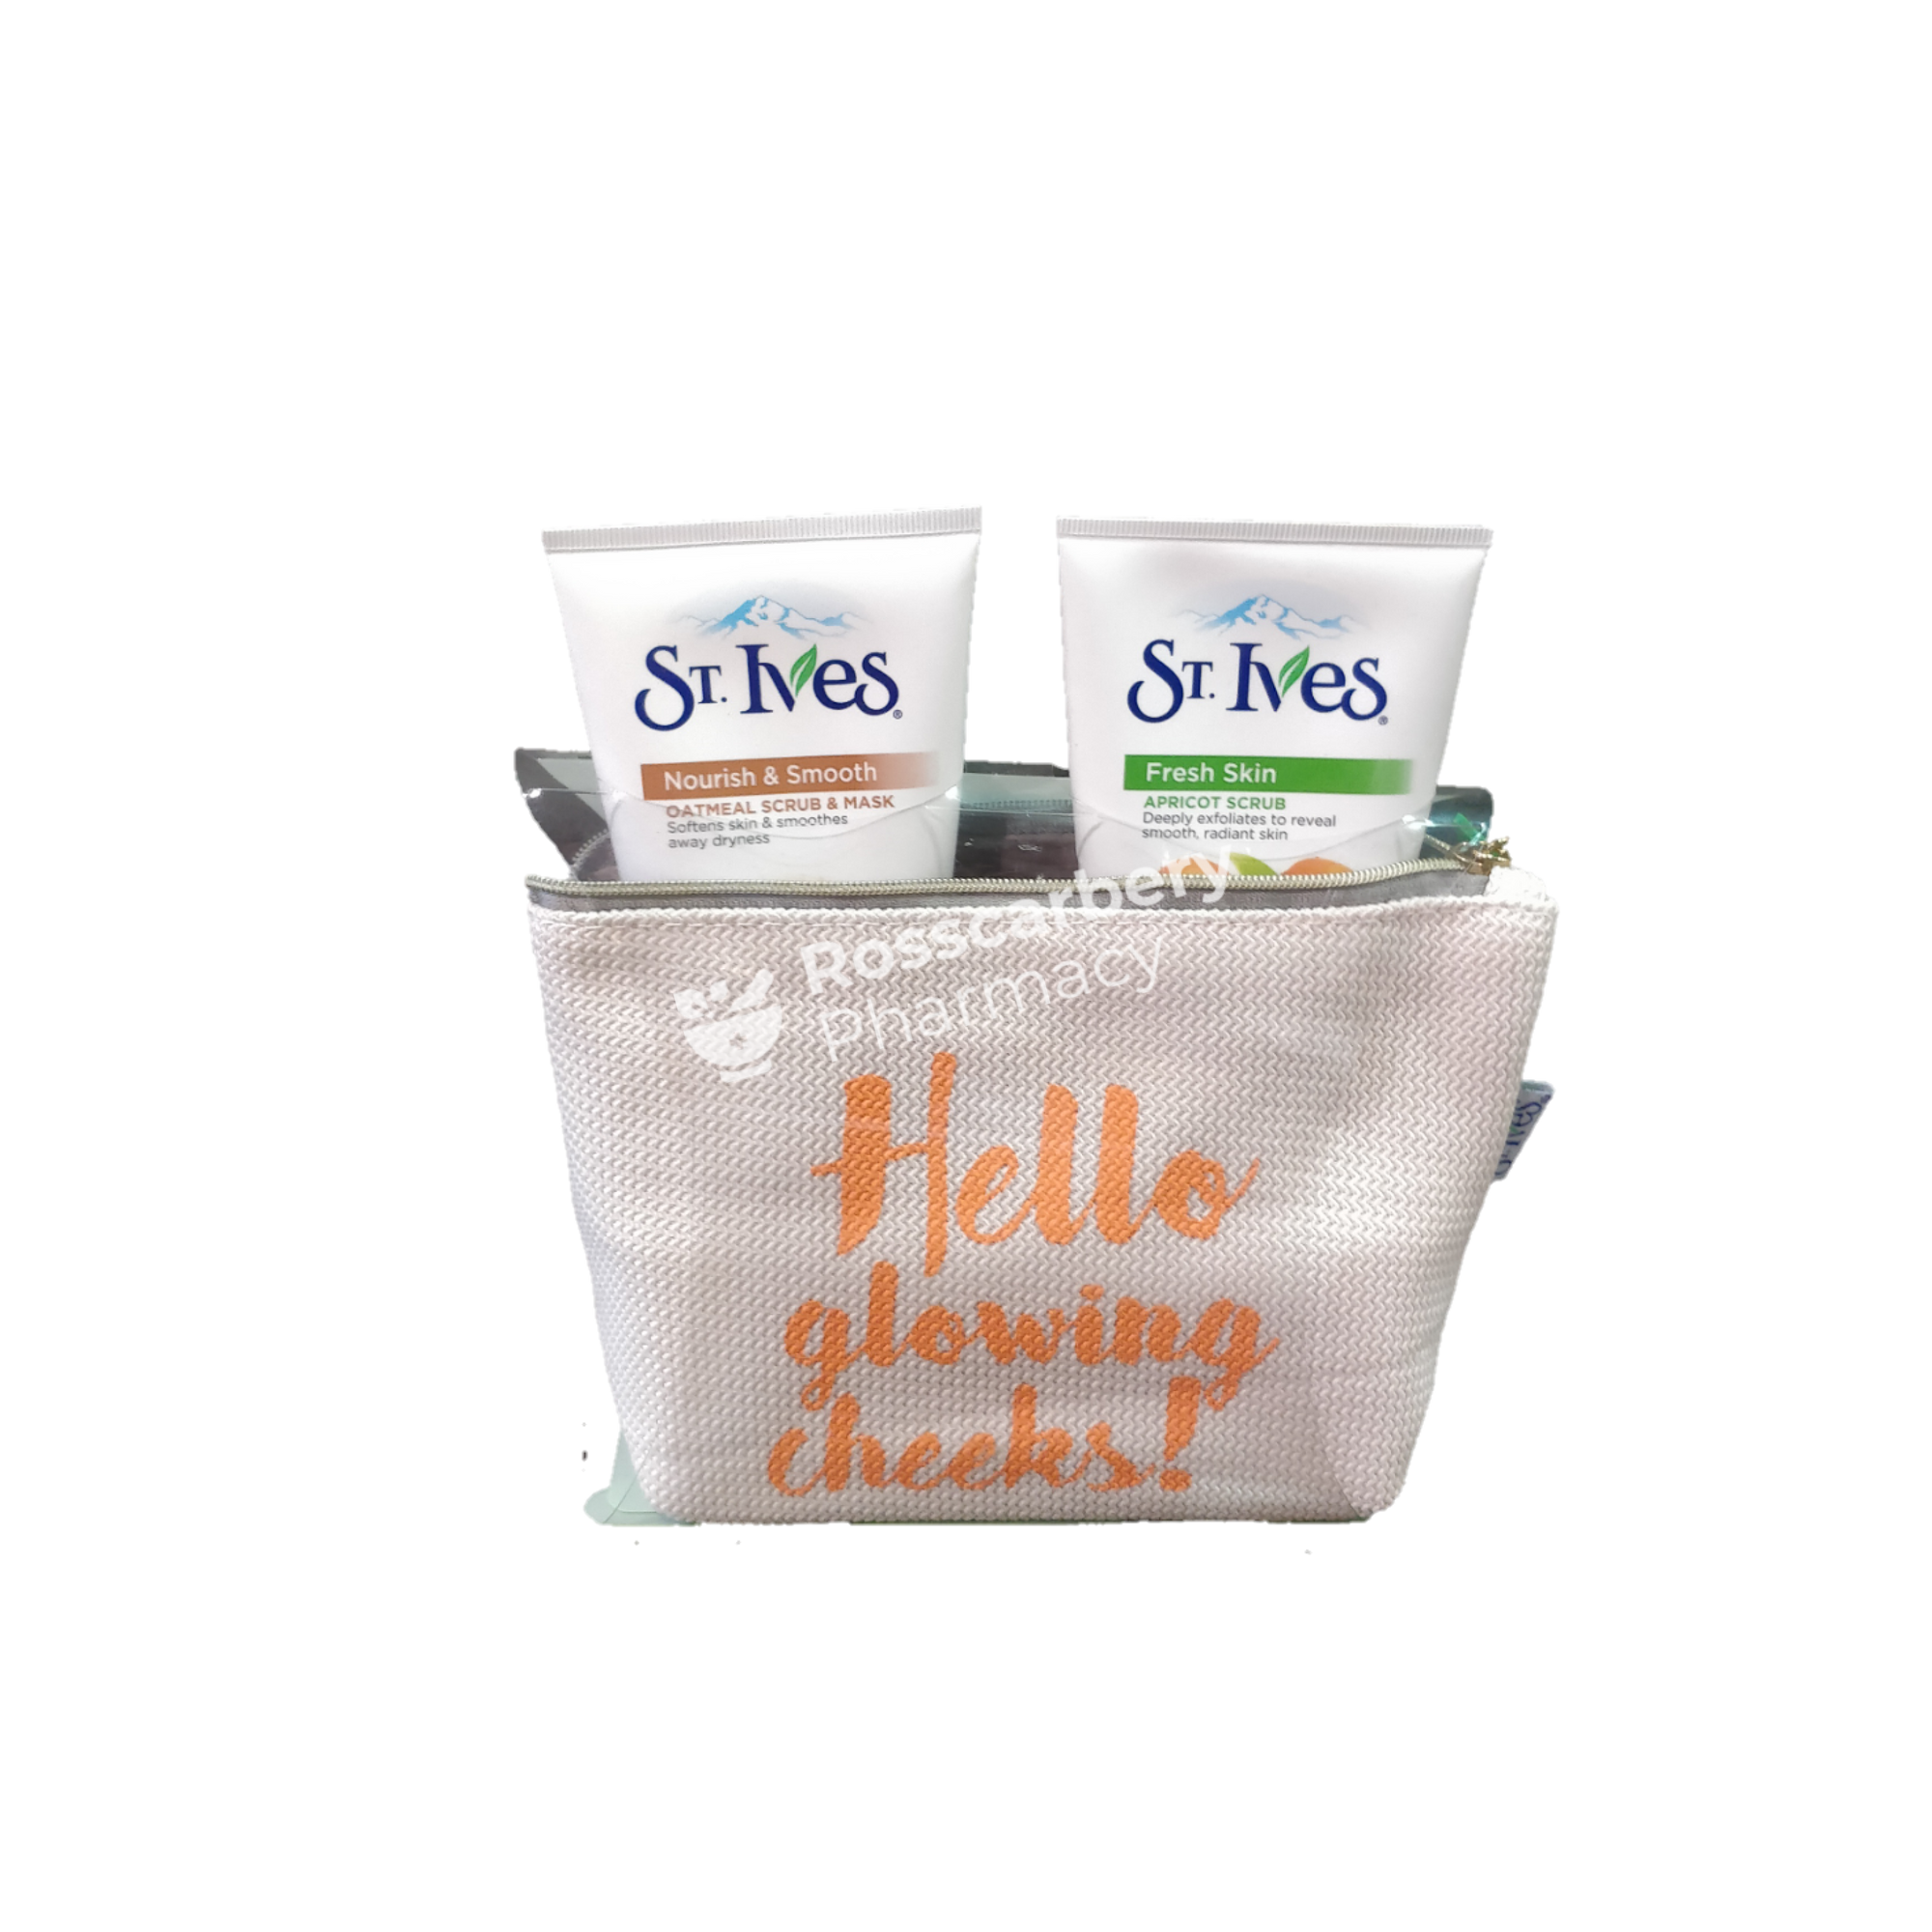 St. Ives Hello Glowing Cheeks! Gift Set 3Pc Skin & Bath Sets